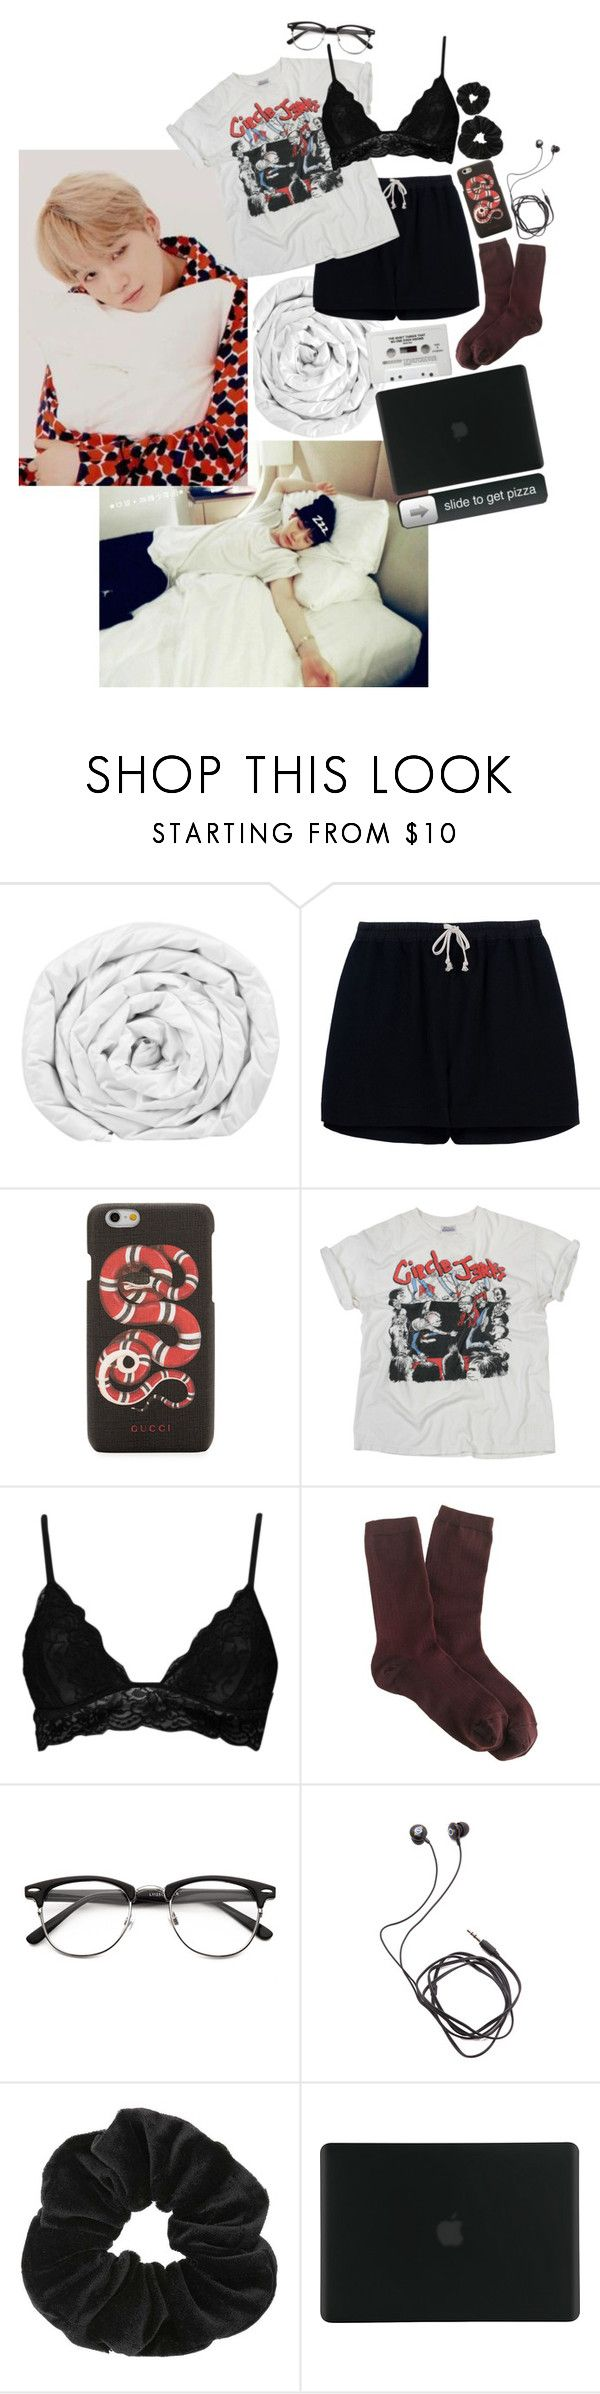 """""""Sleepover - Min Yoongi"""" by blood-sweat-and-tears ❤ liked on Polyvore featuring Brinkhaus, Rick Owens, Gucci, Cast of Vices, Boohoo, J.Crew, Diane Von Furstenberg, Miss Selfridge and Tucano"""